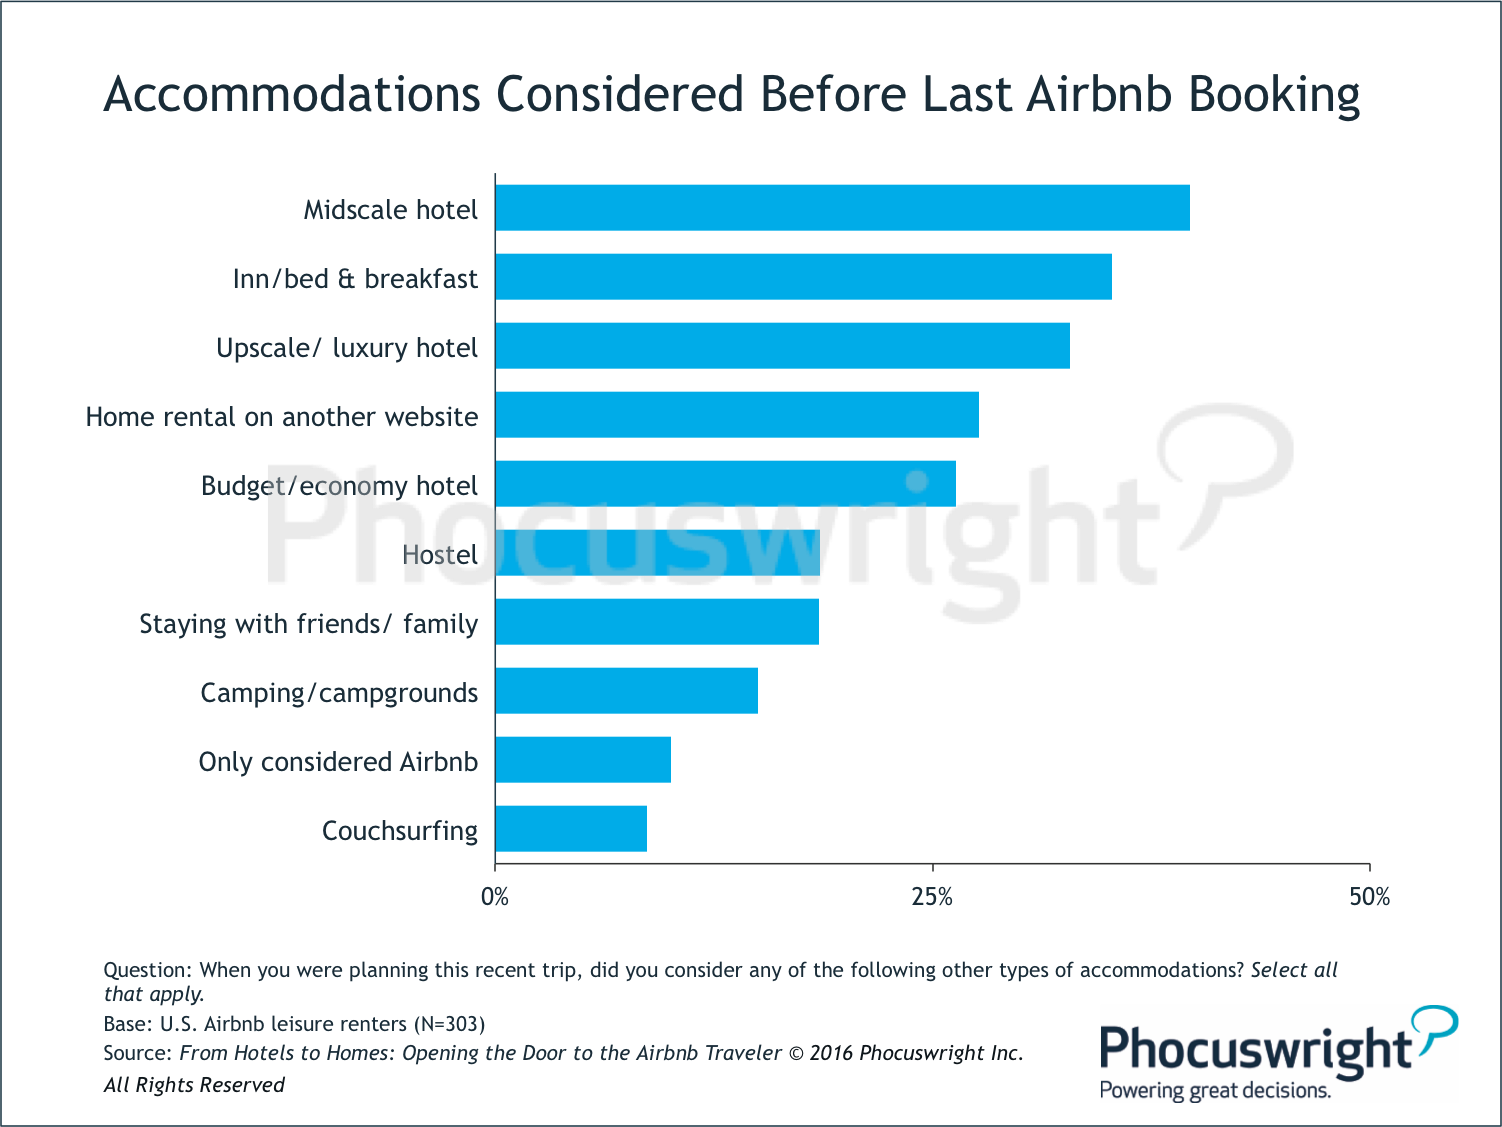 Phocuswright-AccommodationsConsideredBeforeLastAirbnbBooking